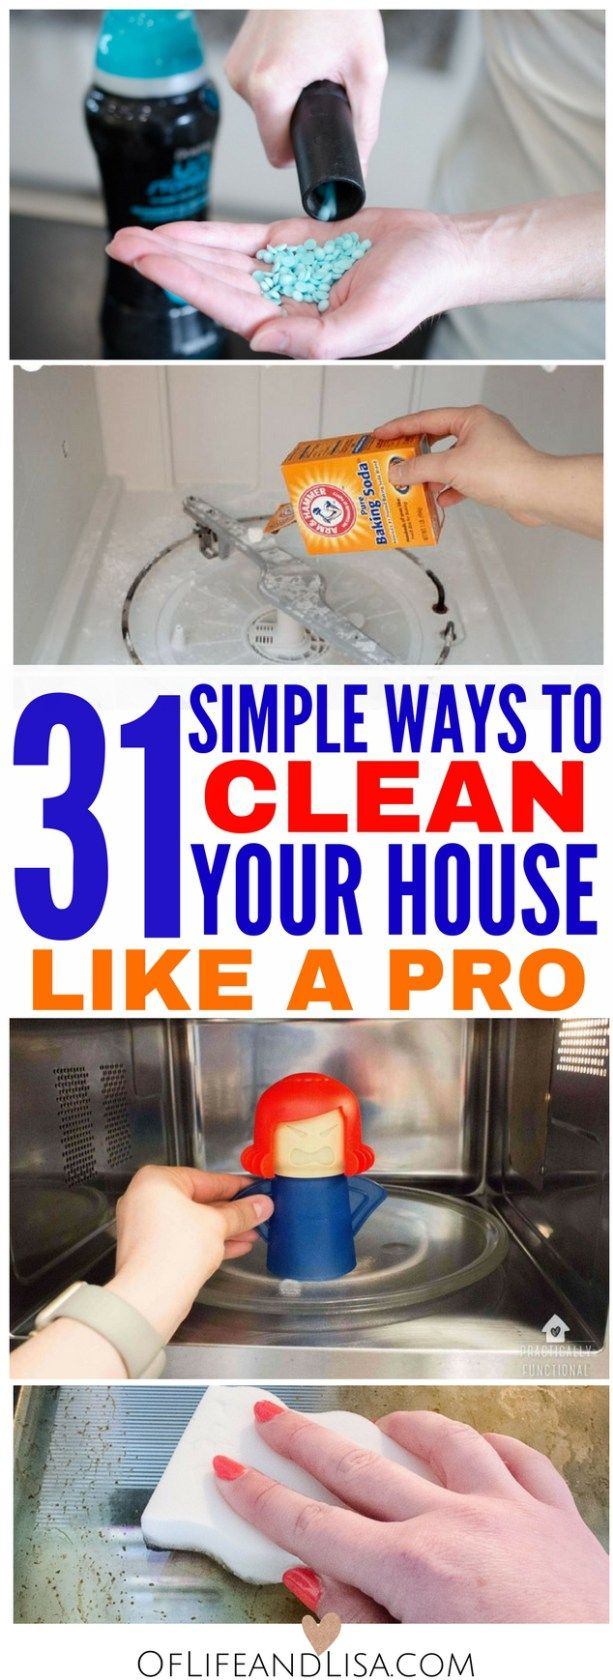 Clean your house from top to bottom like a pro. Check out this post to see 31 House Cleaning Tips.